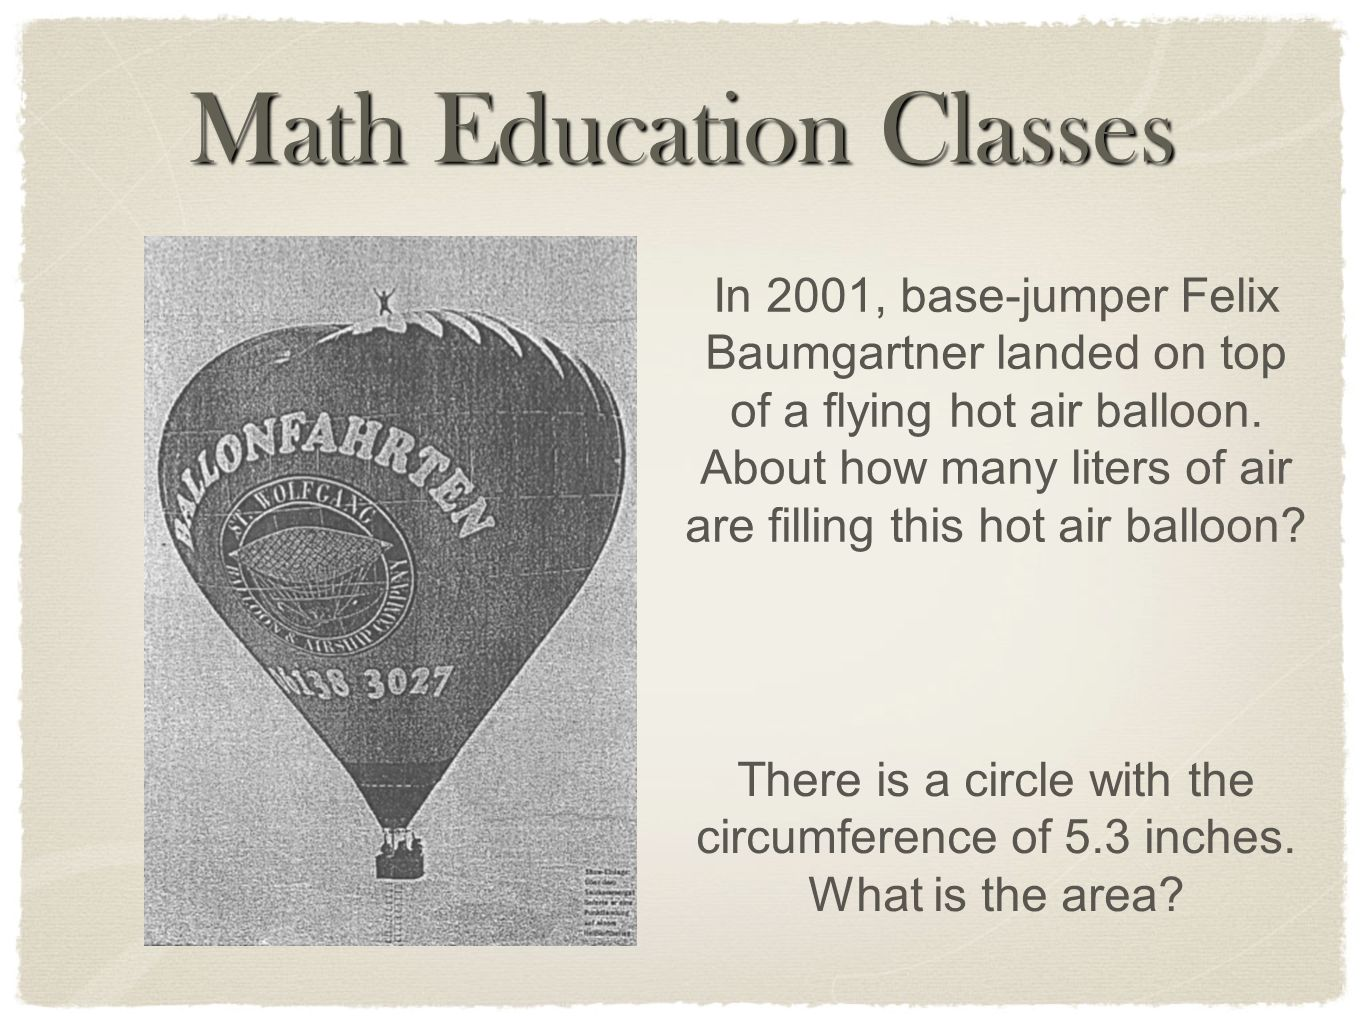 Math Education Classes In 2001, base-jumper Felix Baumgartner landed on top of a flying hot air balloon. About how many liters of air are filling this